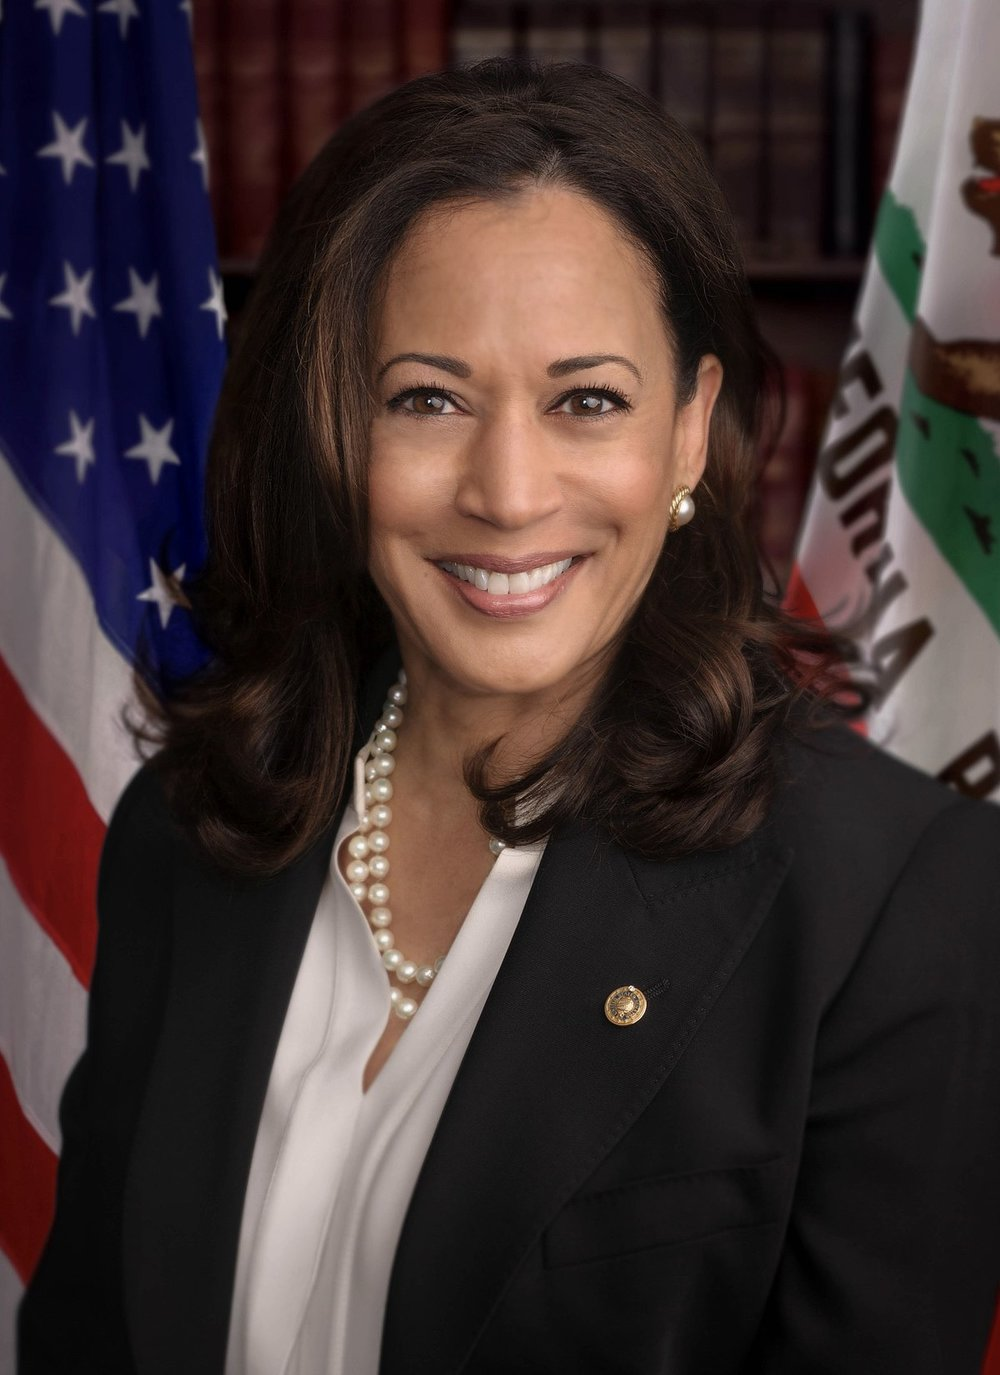 1200px-Senator_Harris_official_senate_portrait.jpg